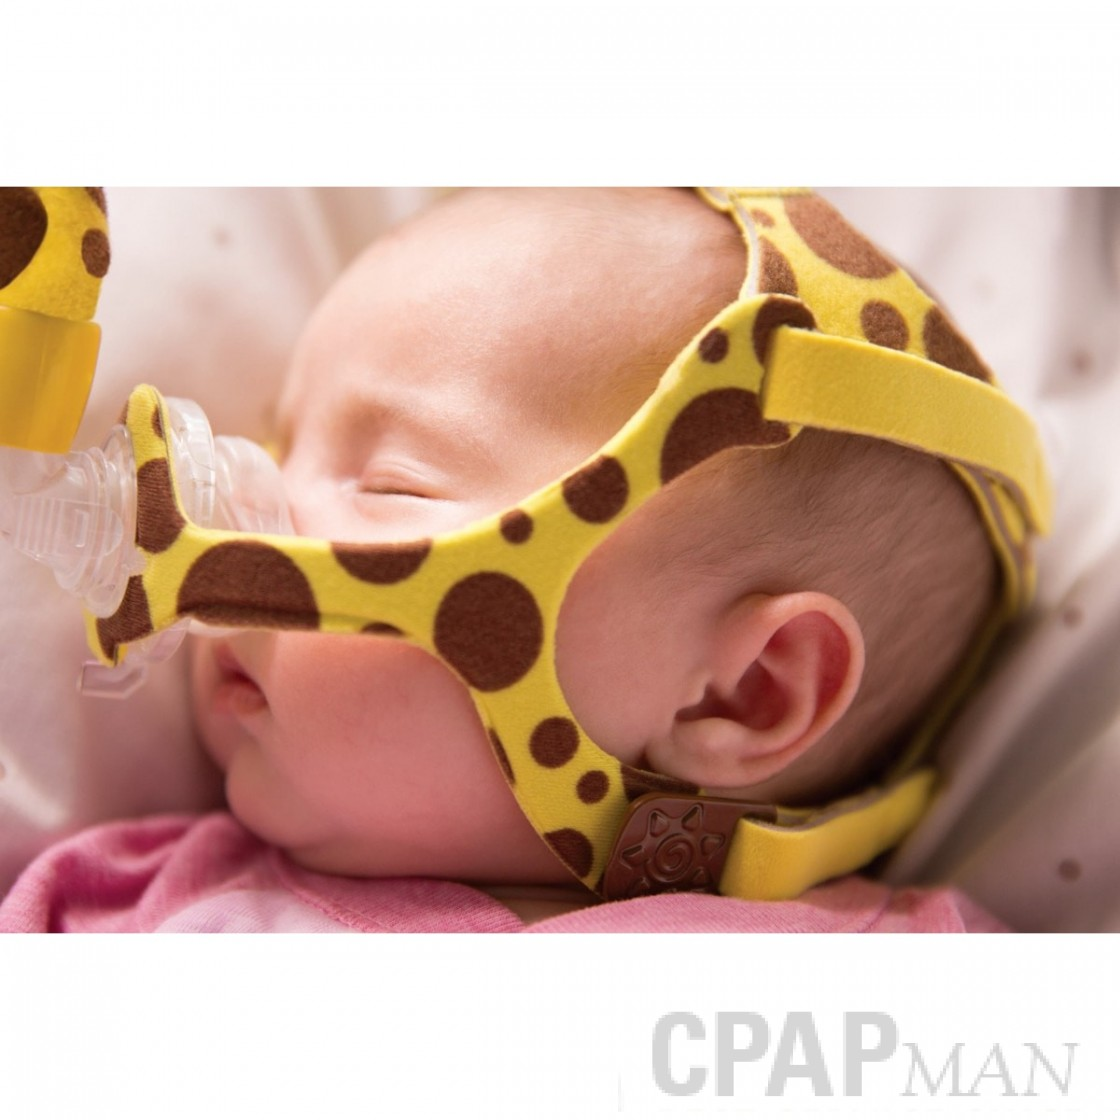 Wisp Pediatric Mask - Nasal CPAP Mask - Respironics